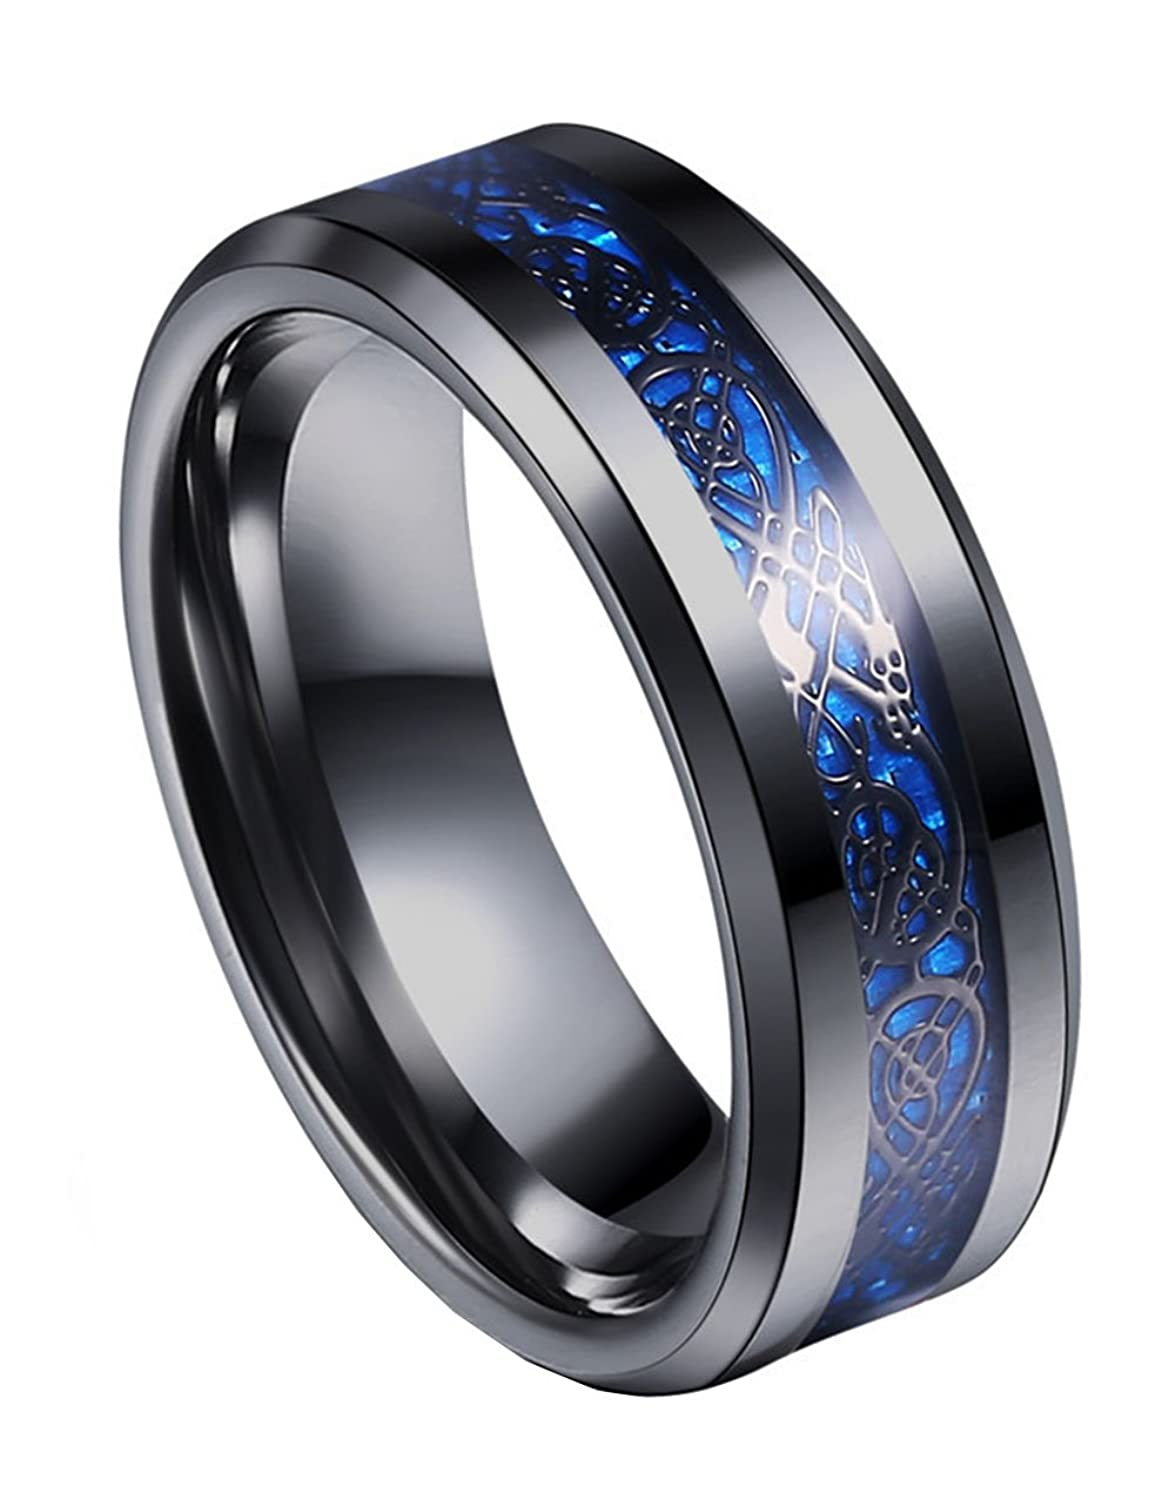 Tanyoyo 8mm Blue Black Dragon Pattern Beveled Edges Celtic Rings